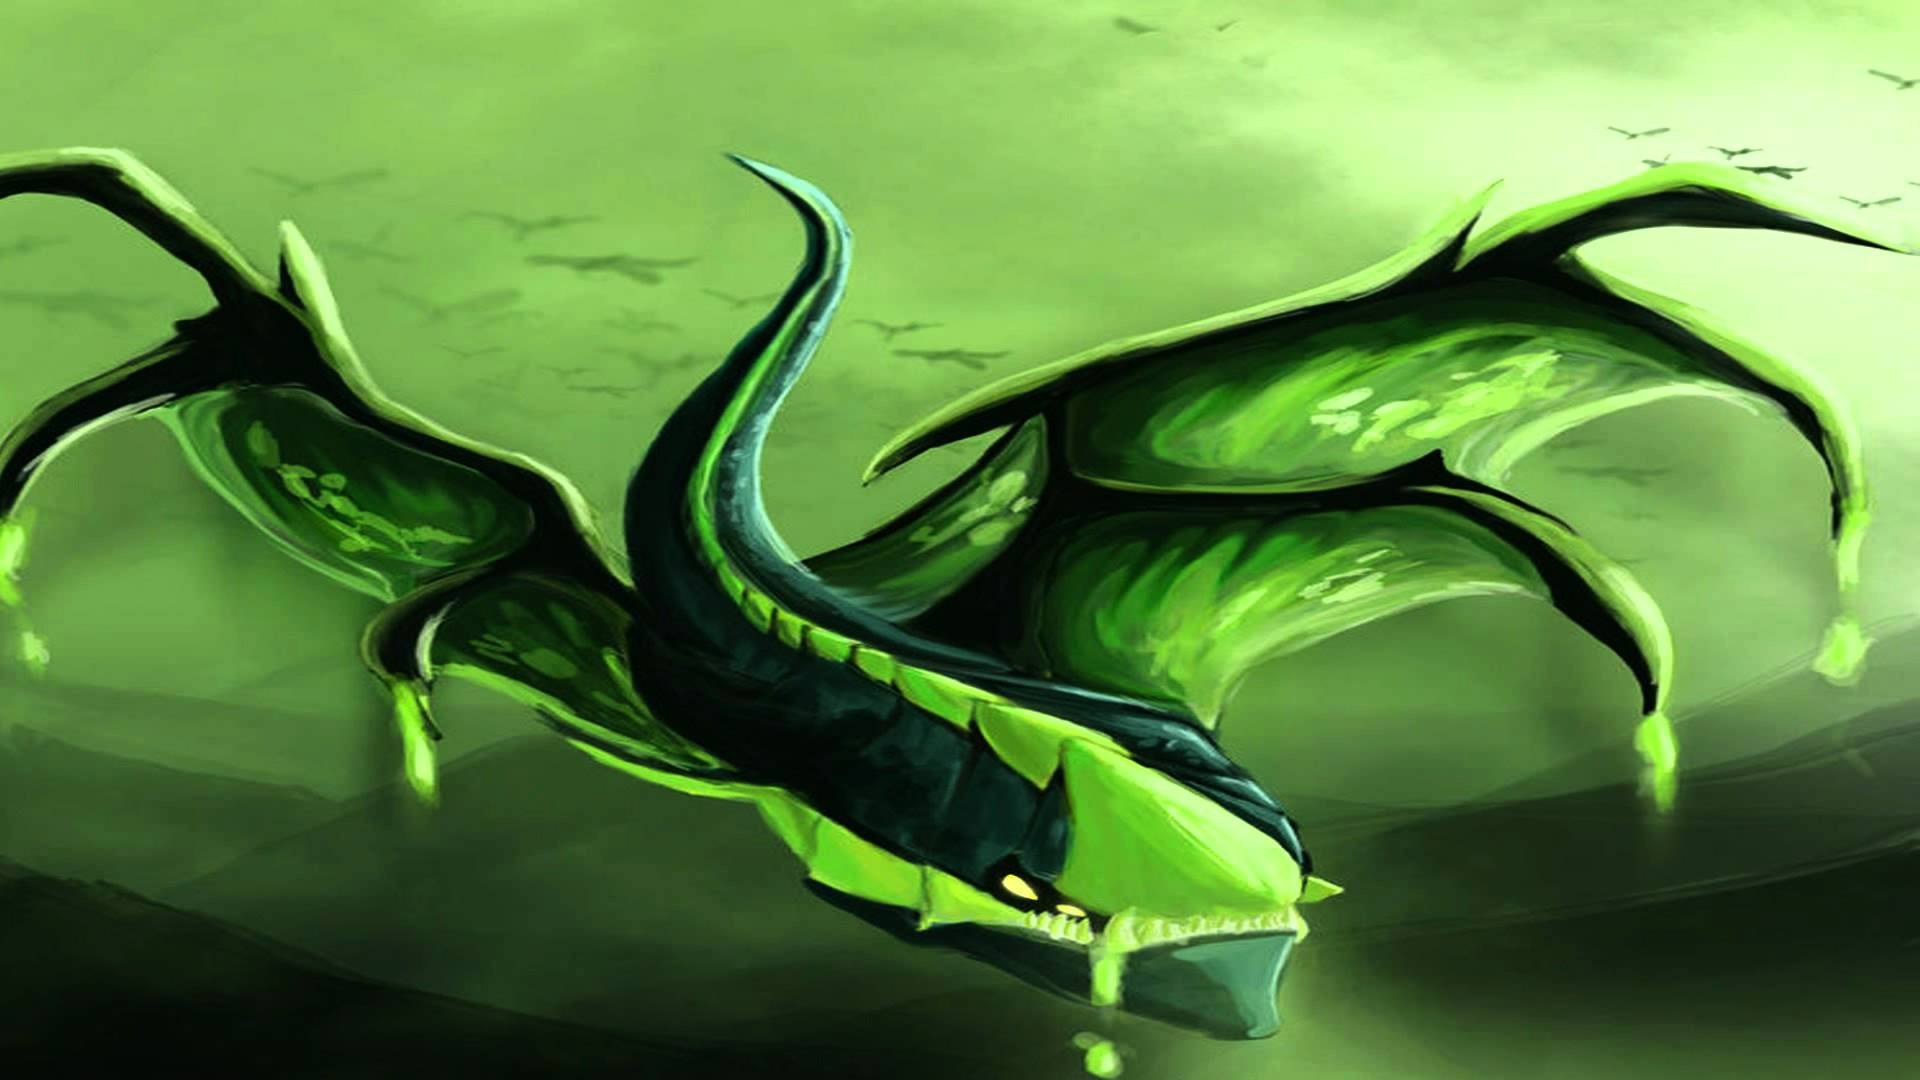 Dota2 : Viper Wallpapers hd